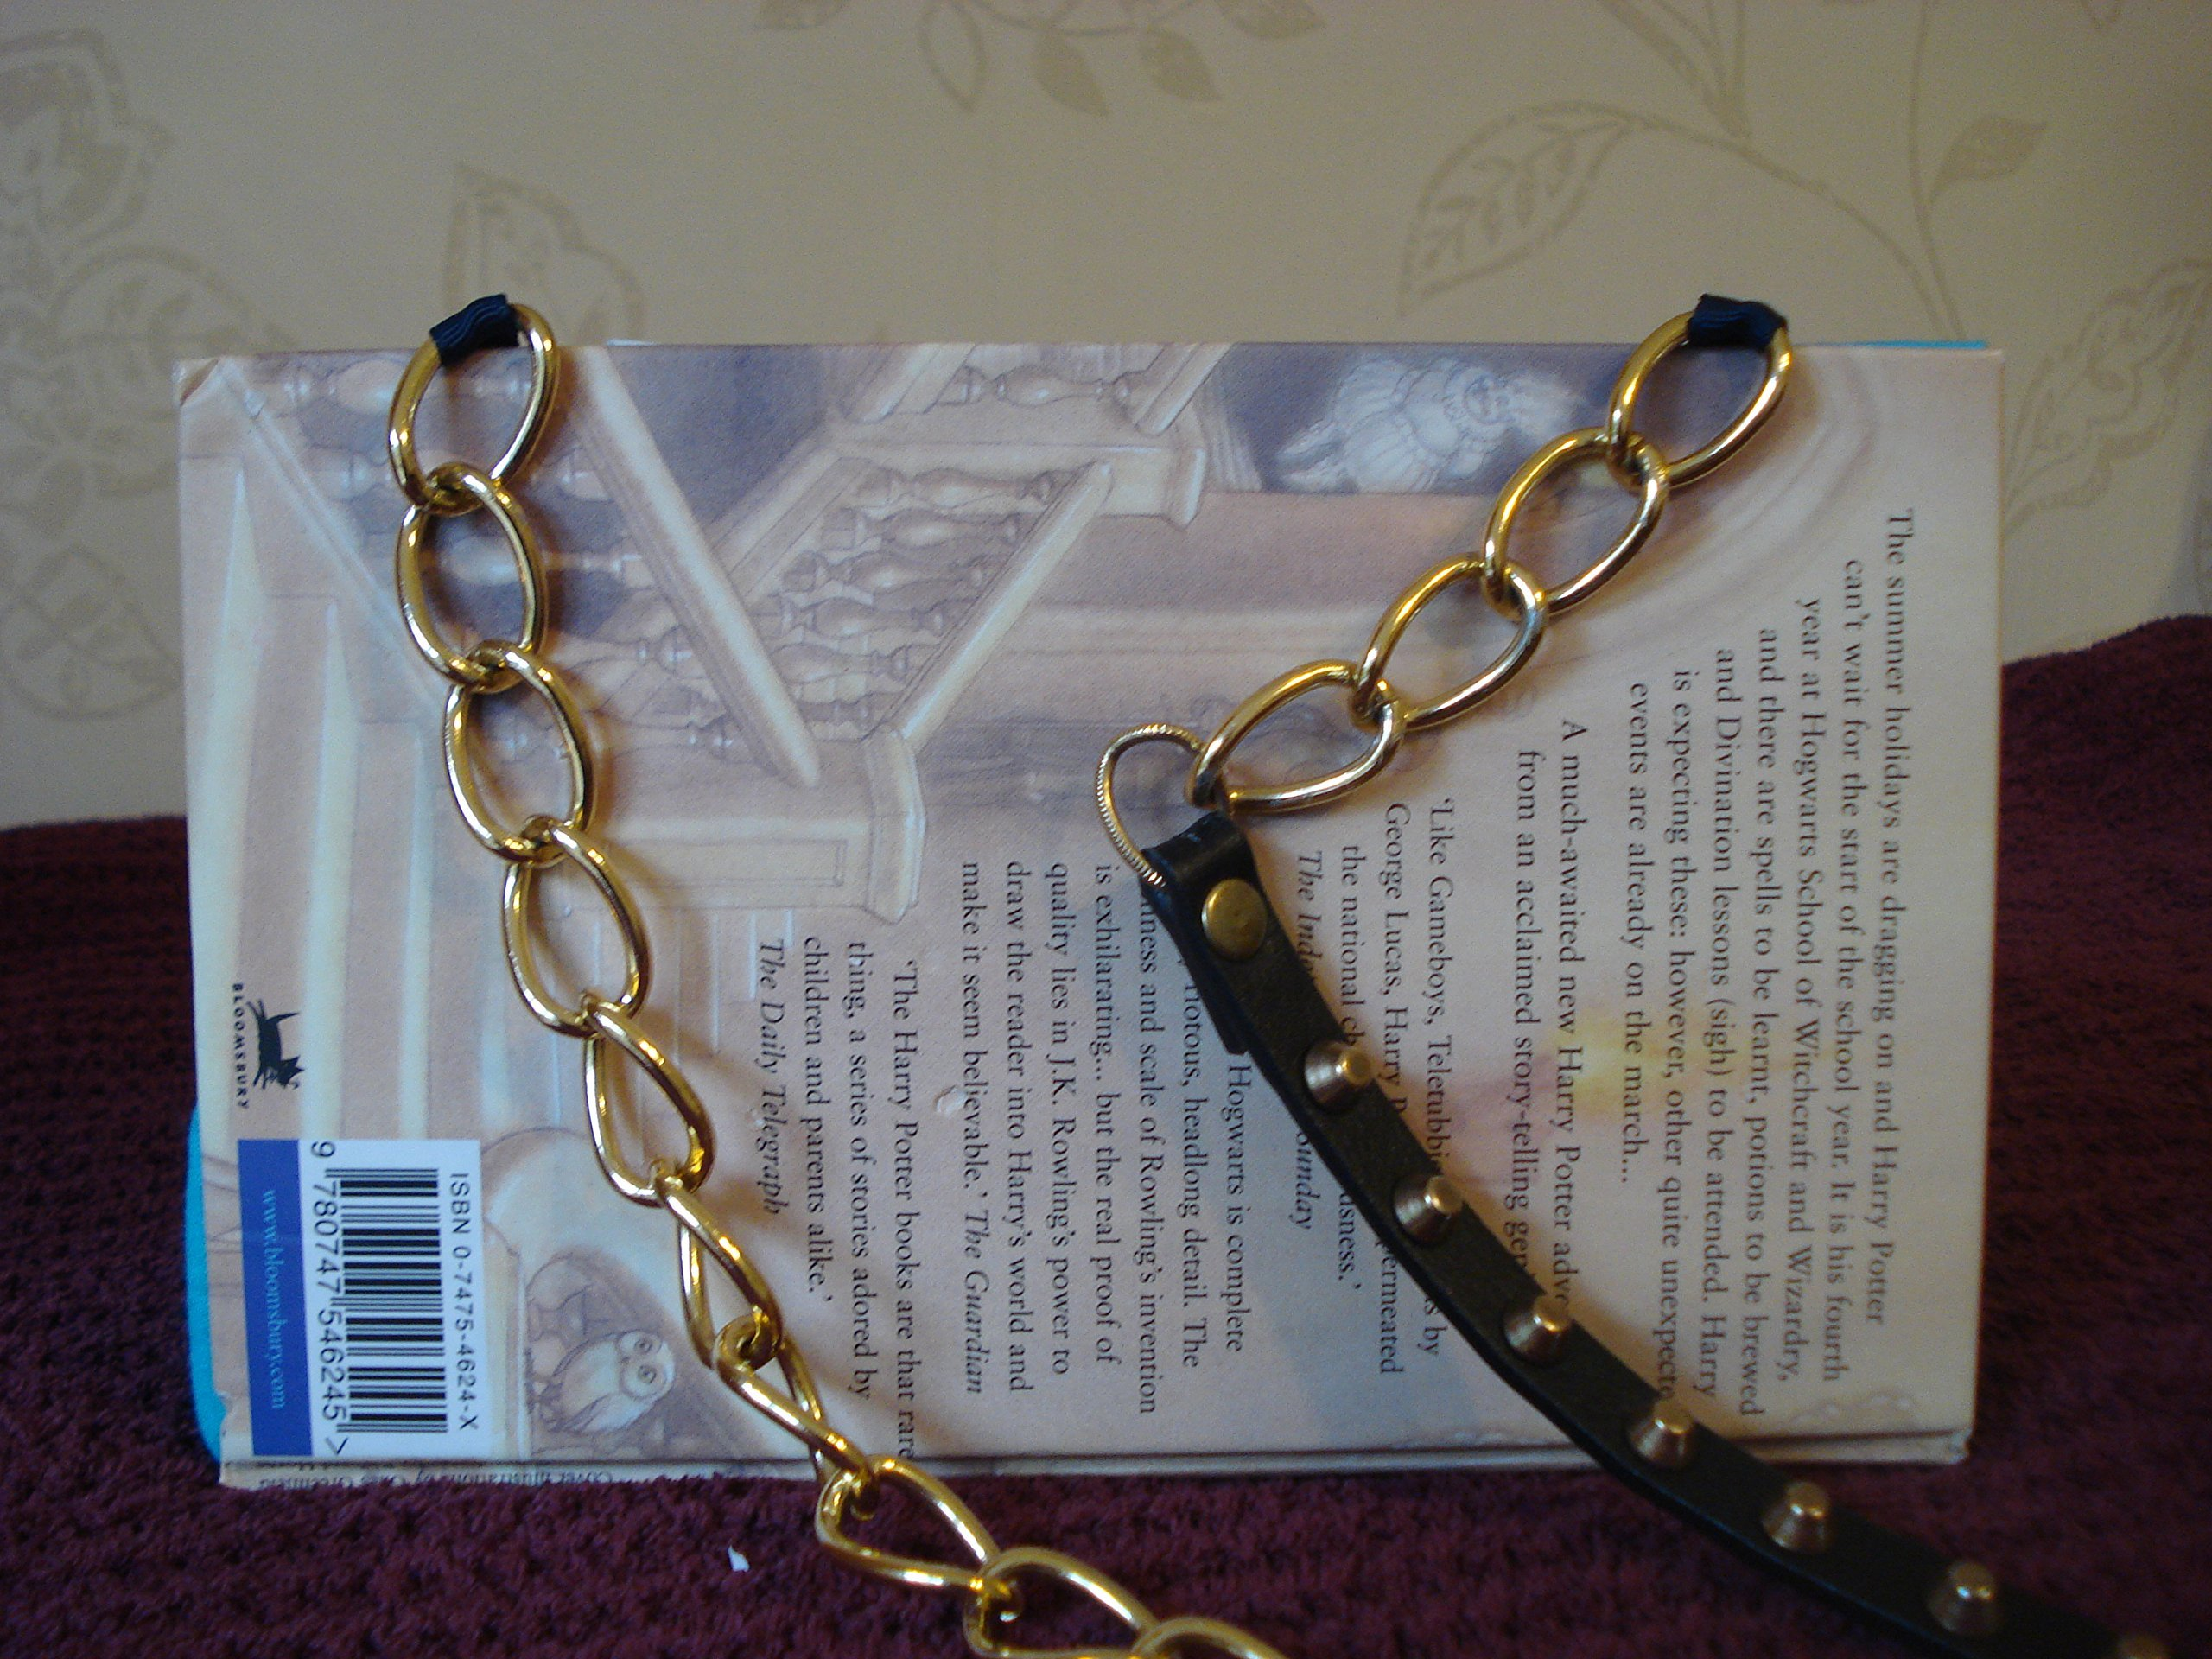 Bag Made Out Of A New Harry Potter Book, With a Shoulder Chain, Great Christmas Gift - handmade-bags